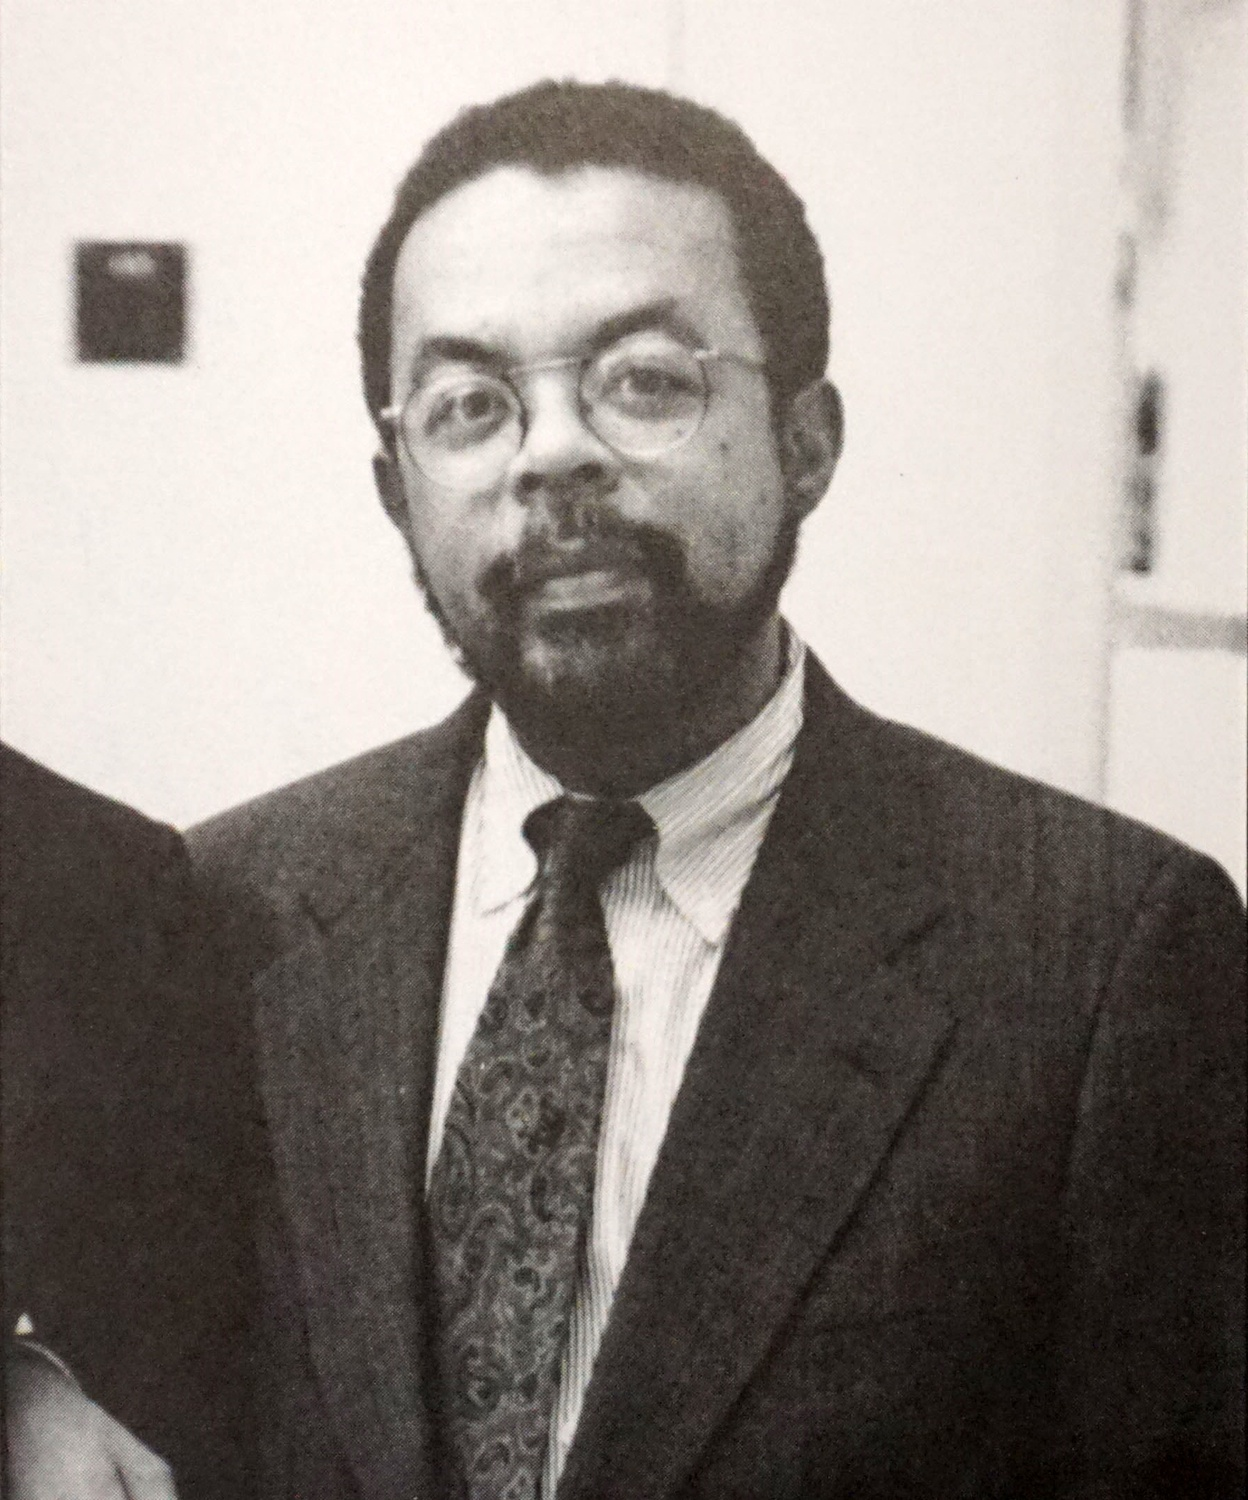 Professor Gates arrived at Harvard in 1991 and revitalized the African and African-American Studies program at Harvard.